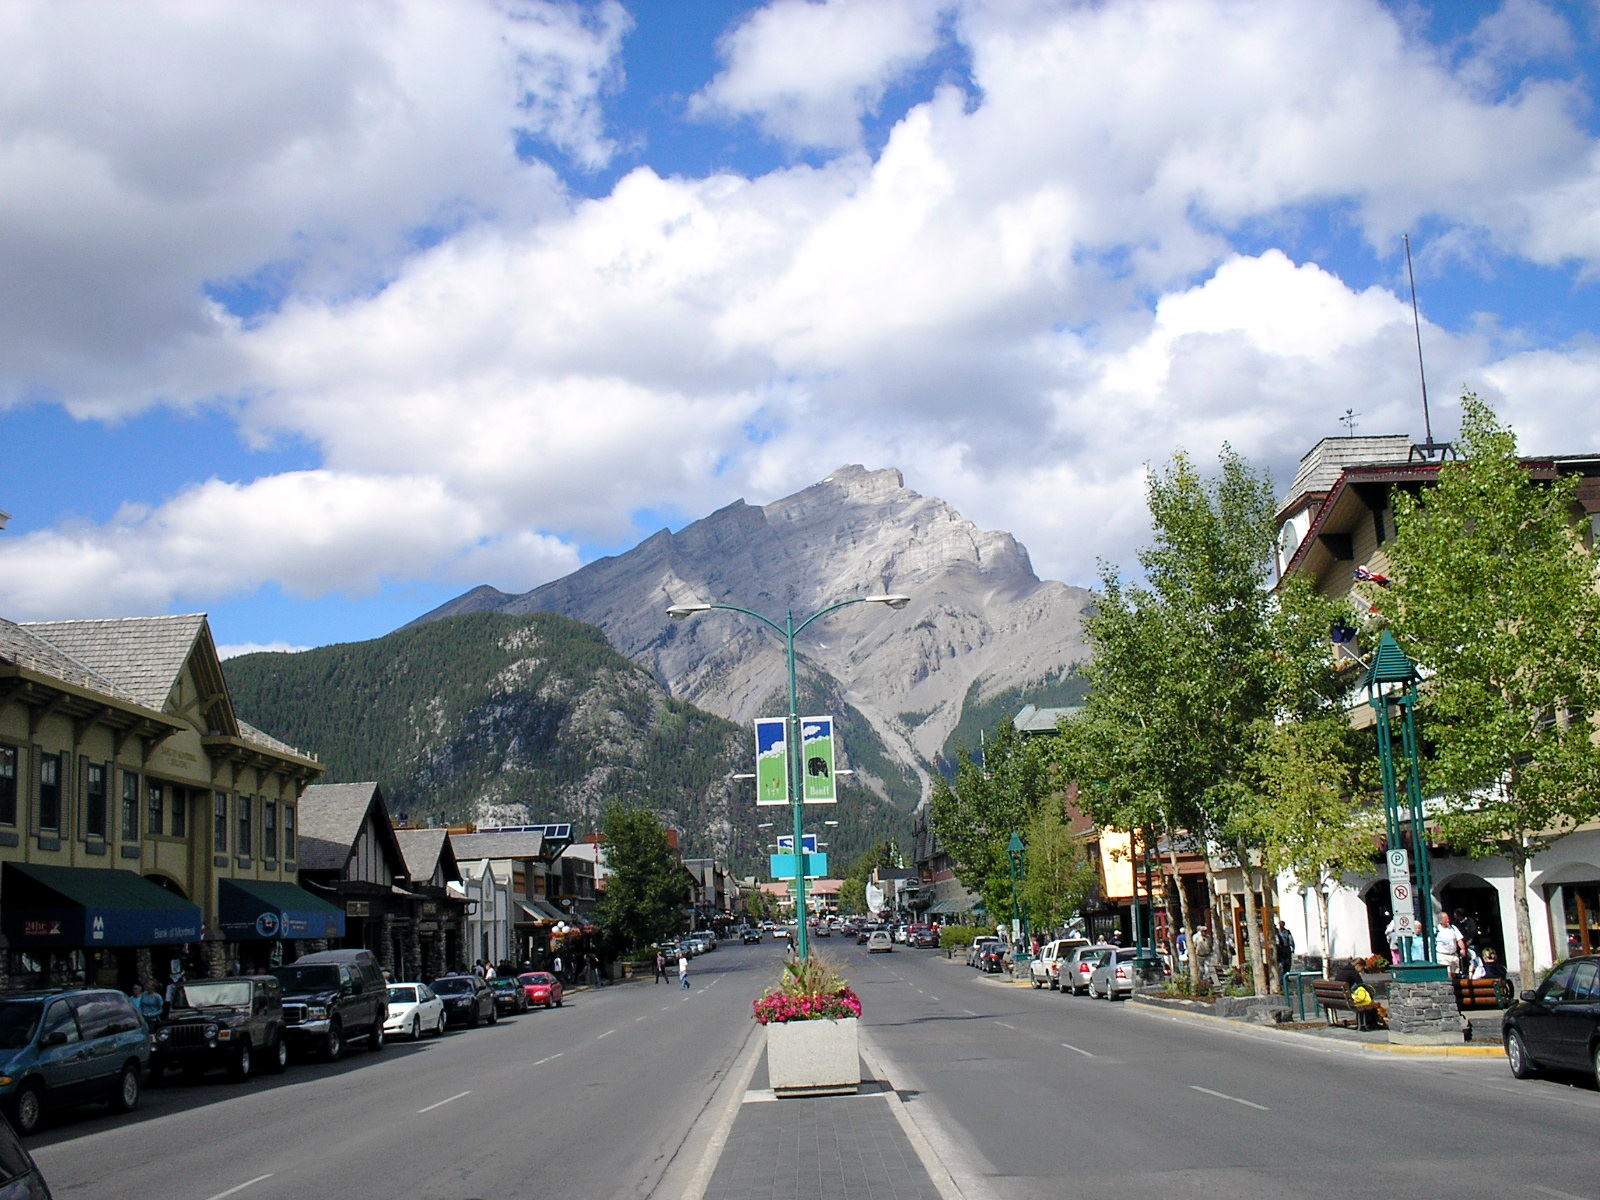 http://upload.wikimedia.org/wikipedia/commons/1/1a/Banff_Avenue_-_Cascade_Mountain.jpg